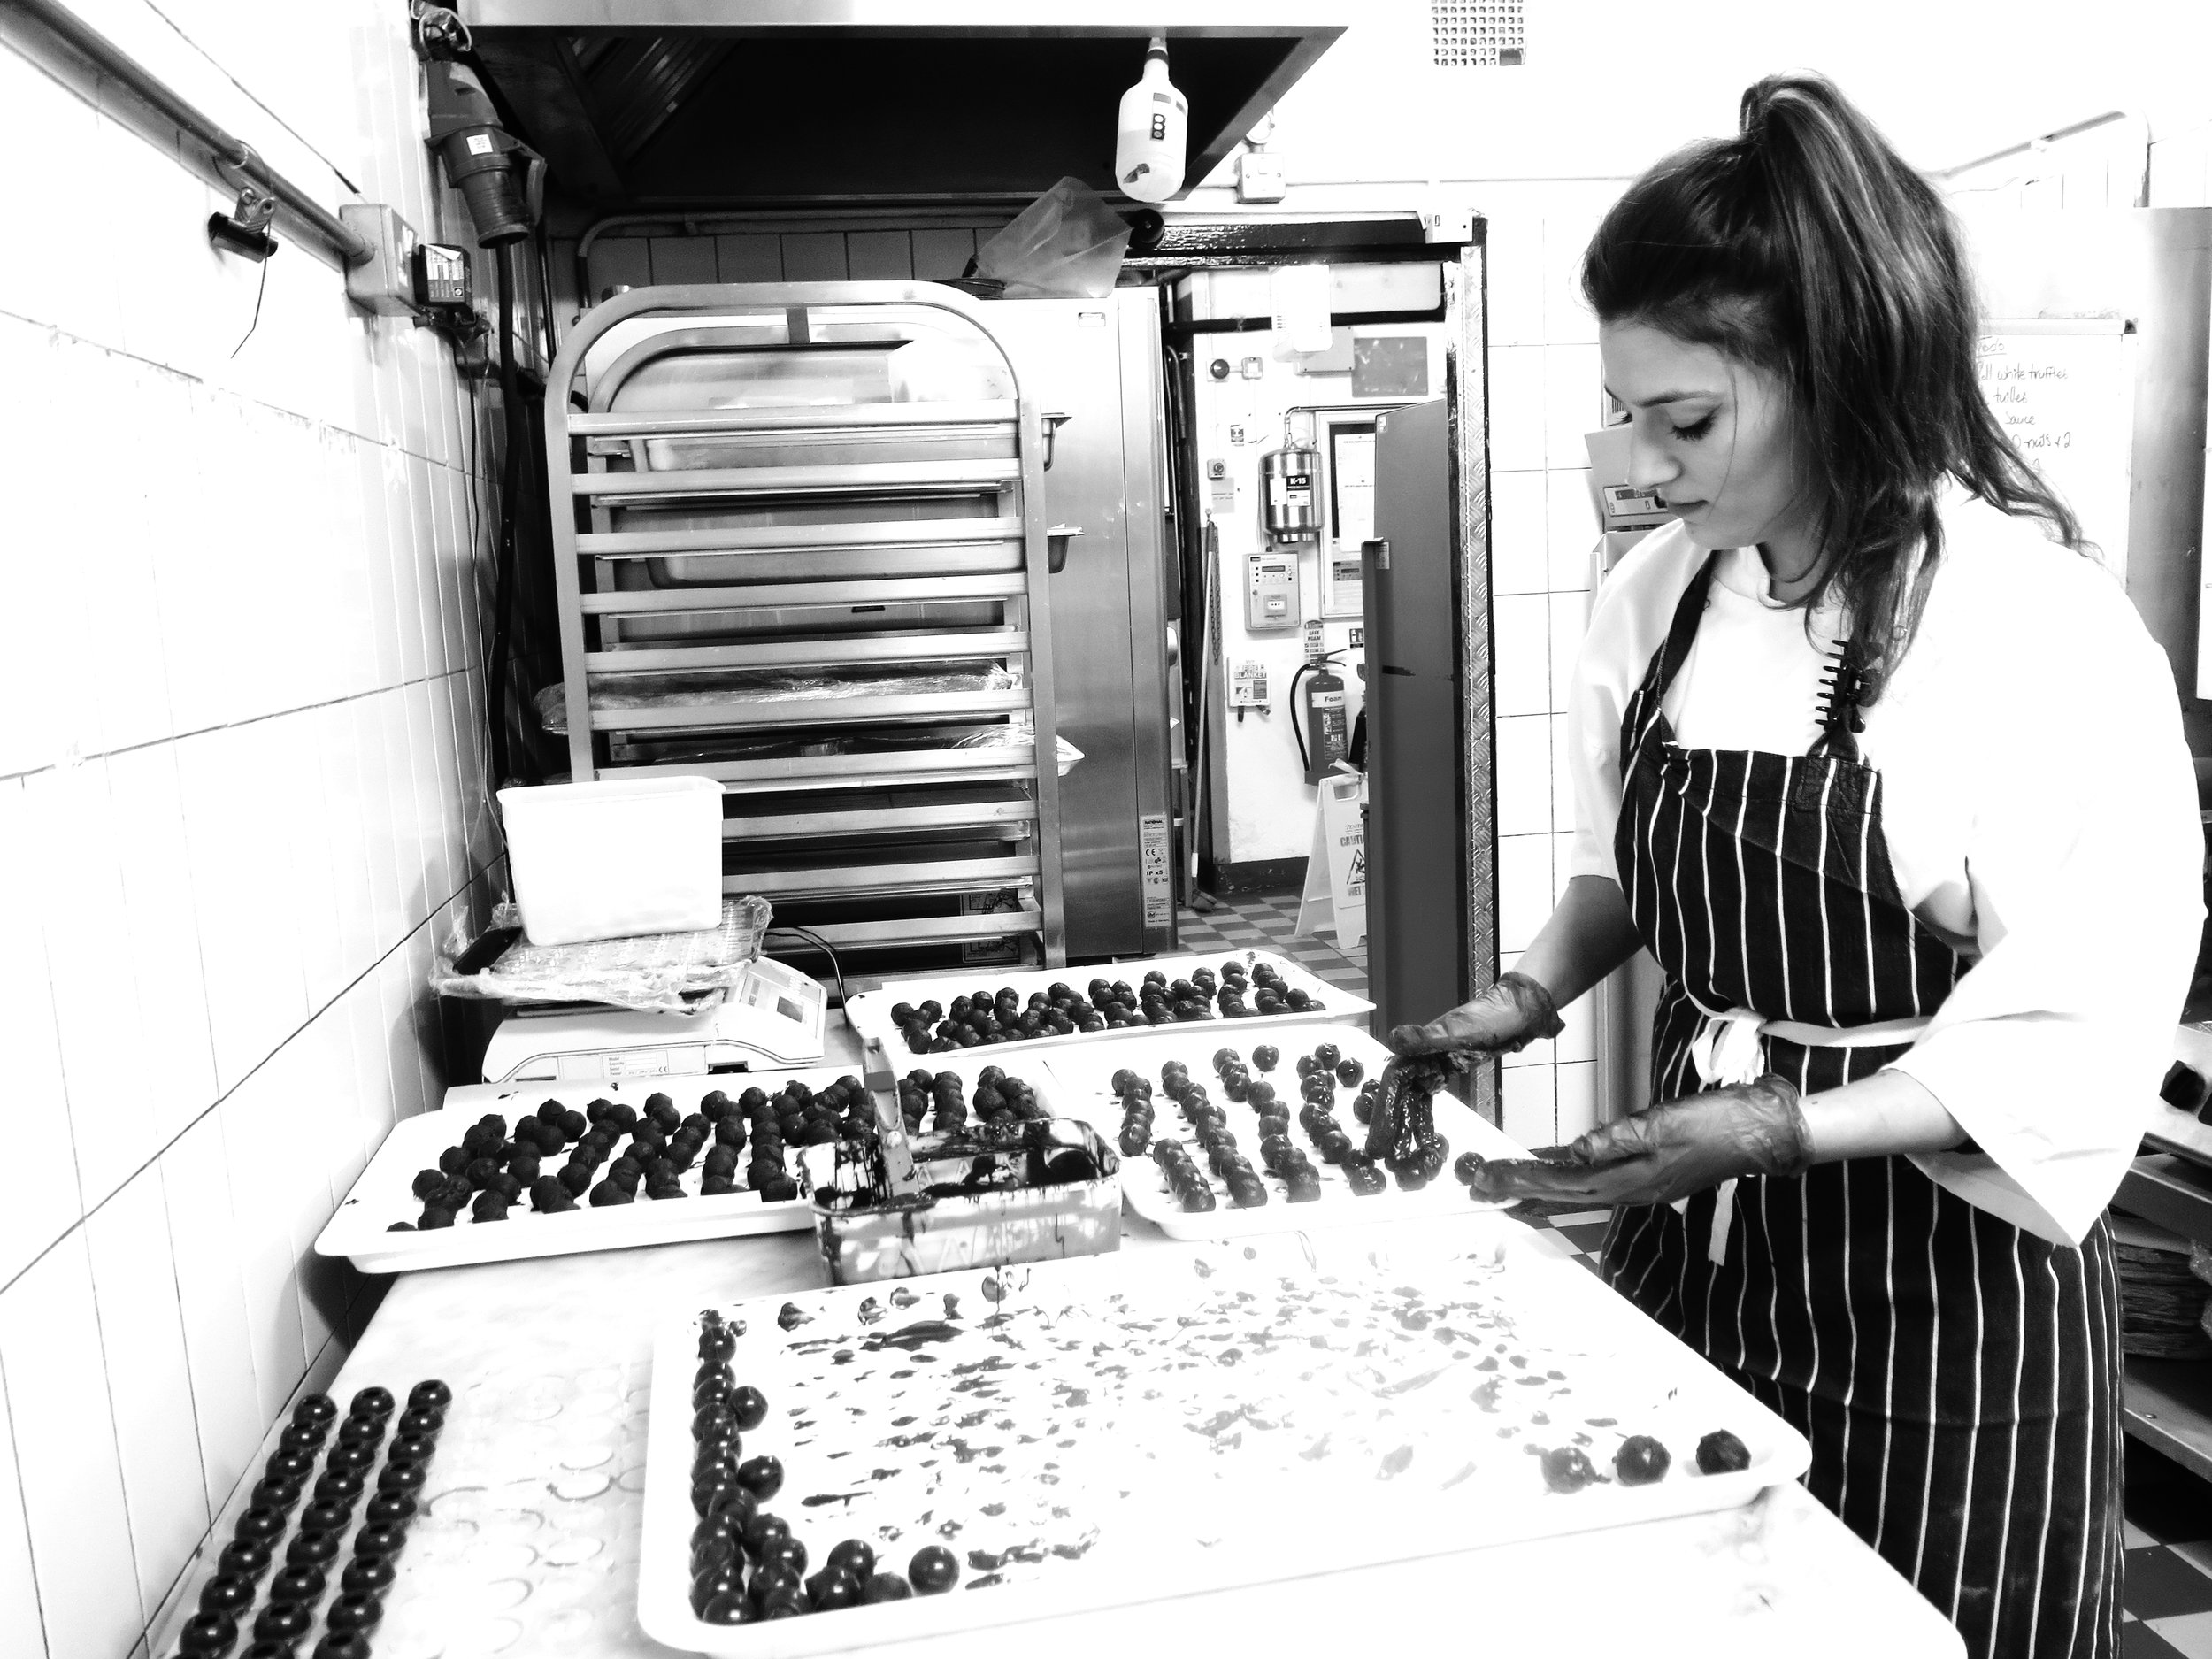 Other side of the door: inside the kitchens of Le Caprice (Part 2)